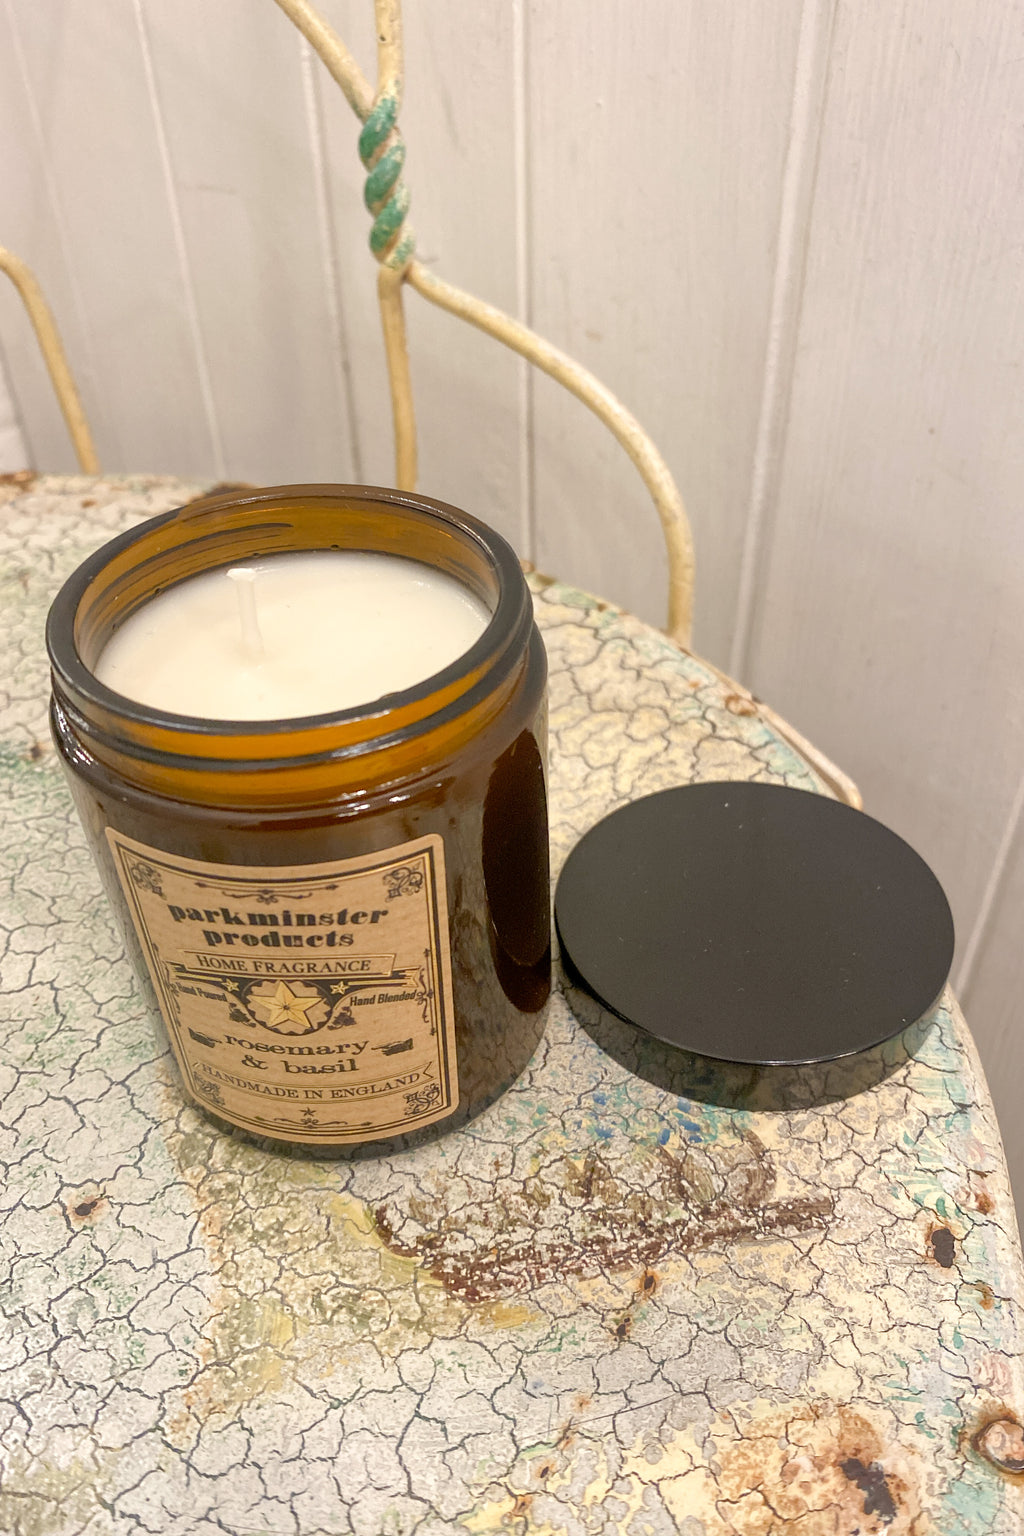 Parkminster Rosemary & Basil Apothecary Jar Candle - The Mercantile London